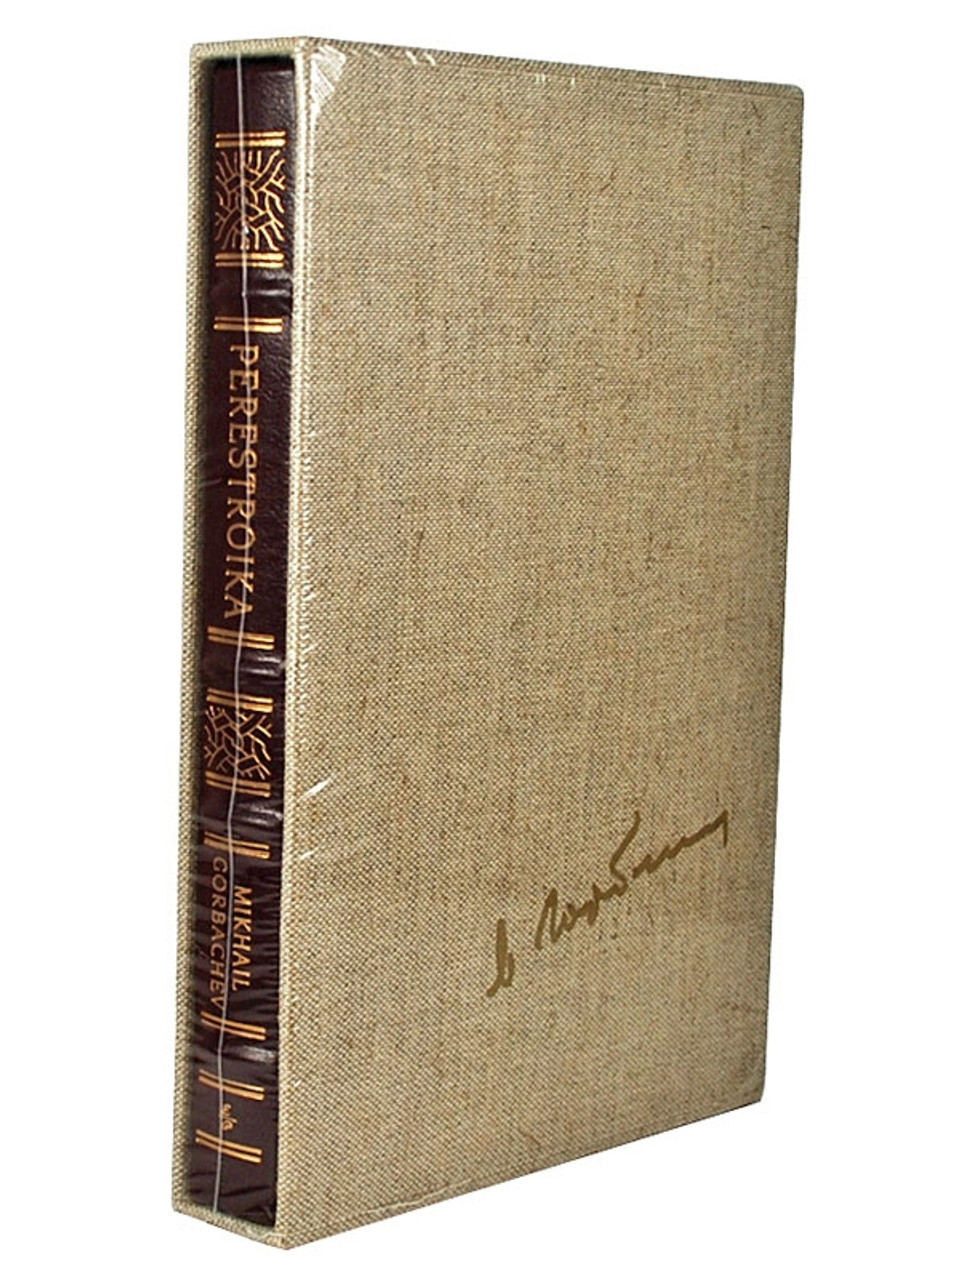 """Easton Press, Mikhail Gorbachev """"PERESTROIKA"""" Signed Limited Edition of only 250"""